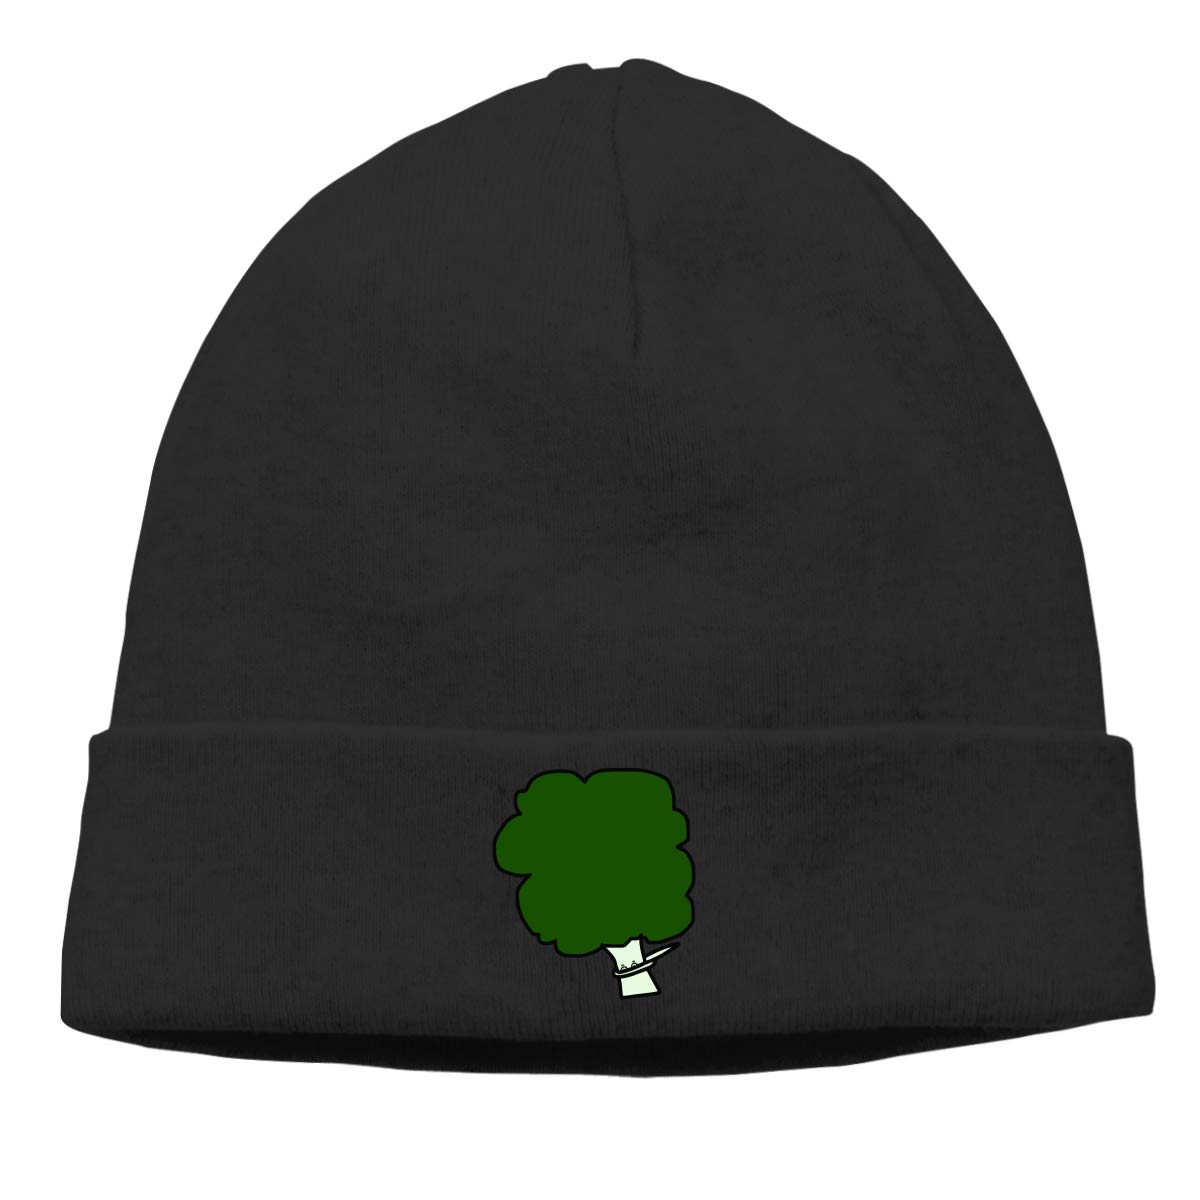 Stretchy /& Soft Winter Cap Thin Dabbing Broccoli Men Womens Solid Color Beanie Hat